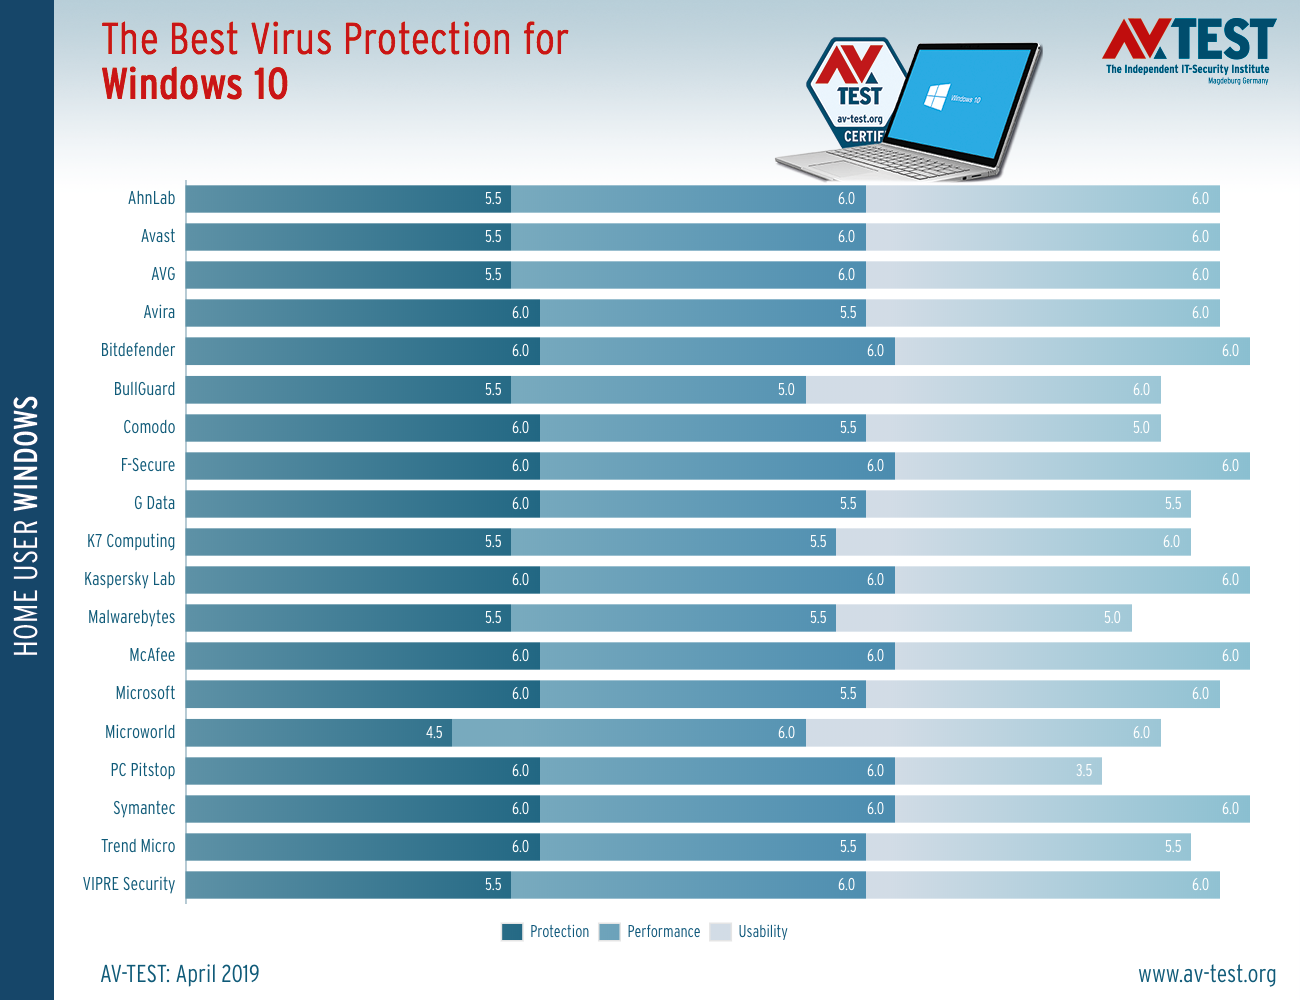 Best Anti Virus 2019 Best Antivirus for Windows 10 (March/April 2019 Anti Malware Tests)